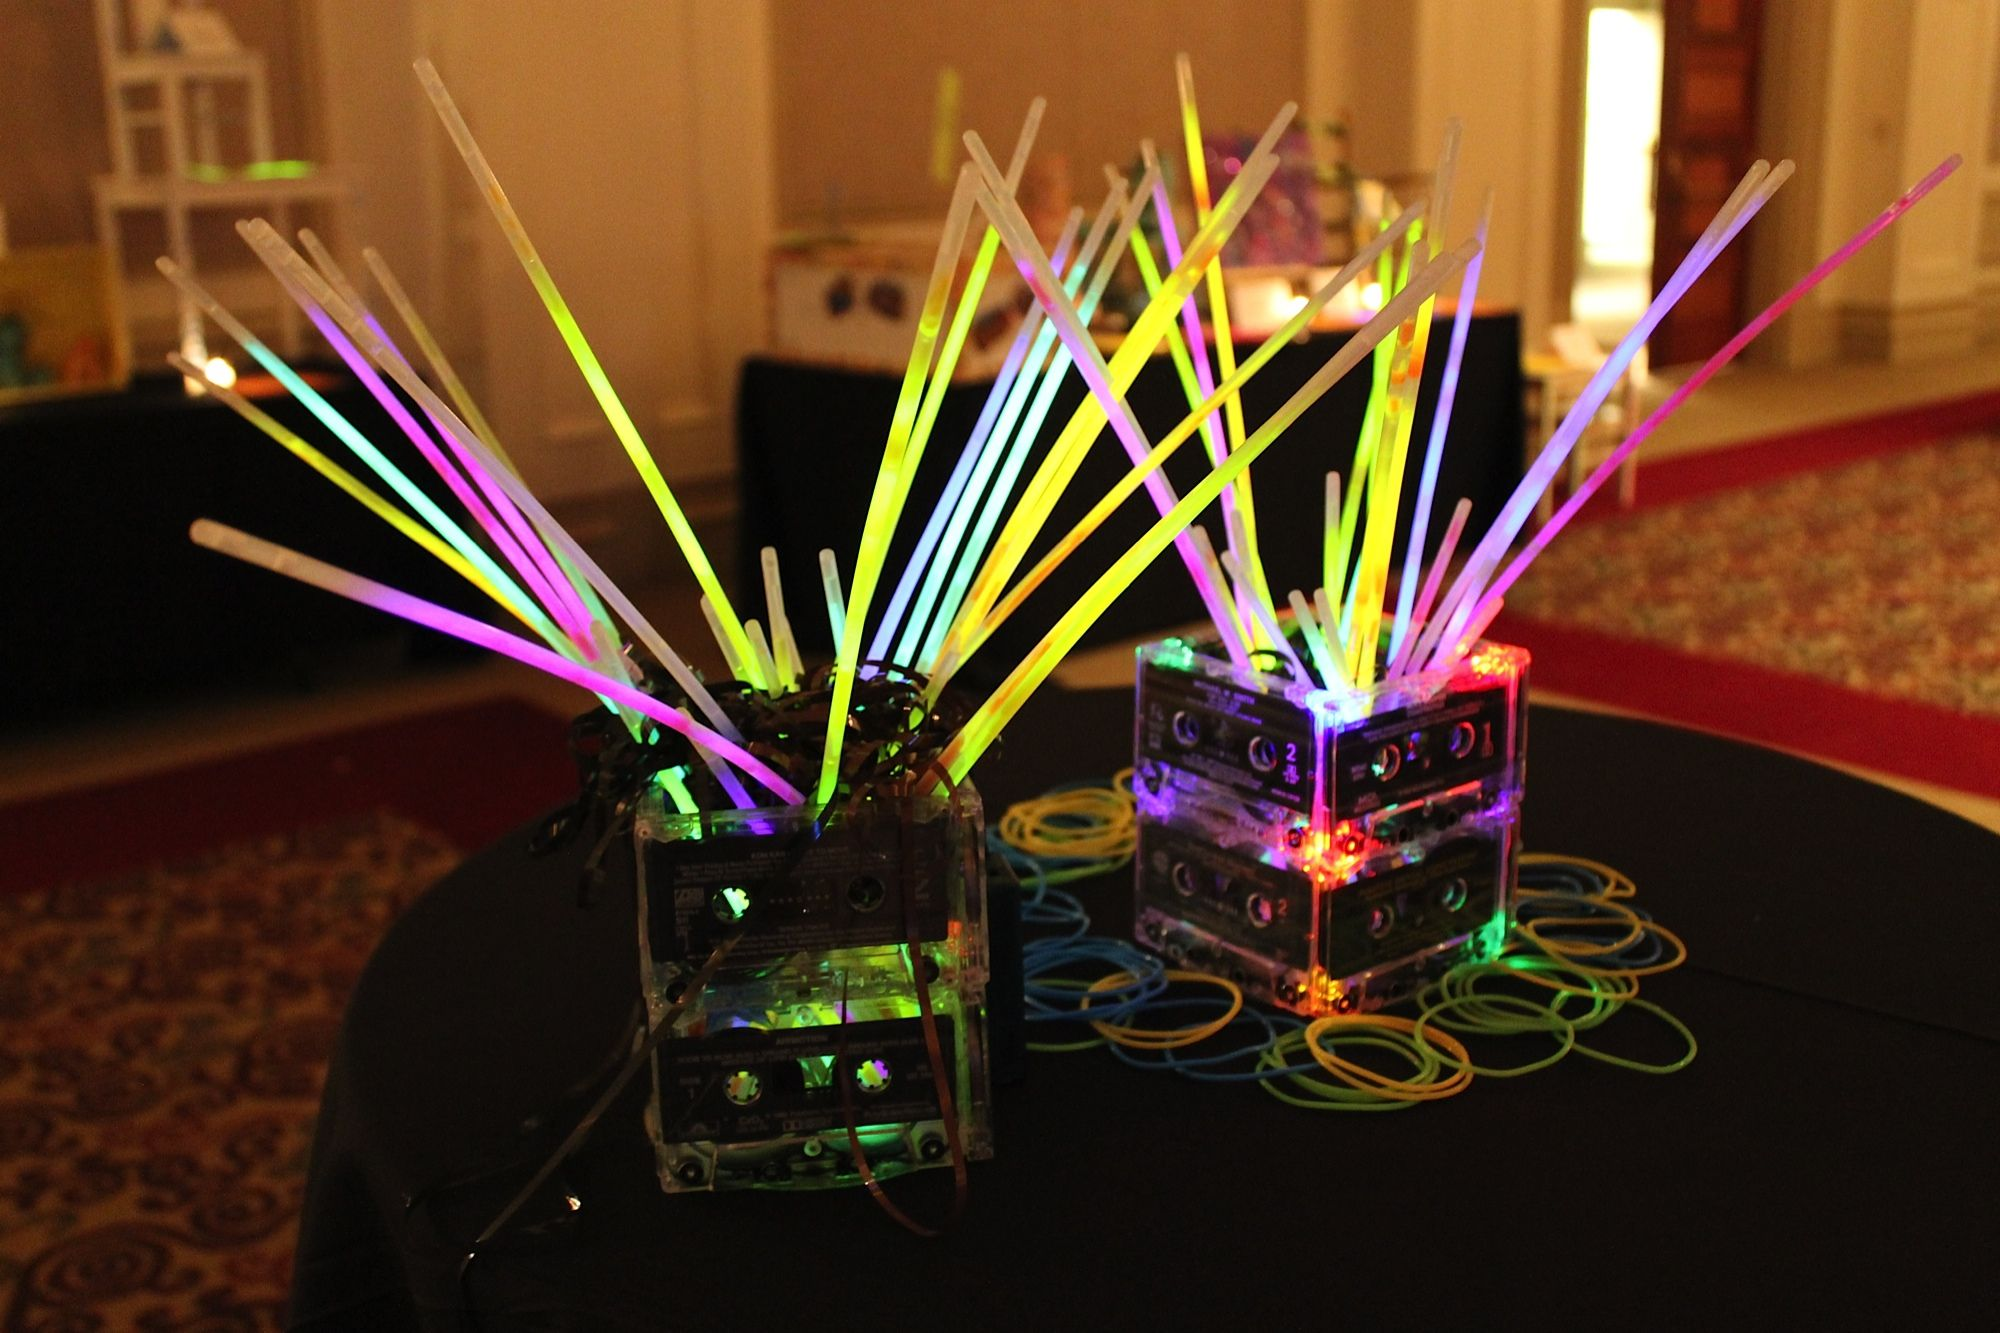 80s Gala Centerpieces Ripped Apart Old Tape Cassettes Stuffed Them Into These Centerpieces With 80s Party Decorations 80s Theme Party 80s Birthday Parties